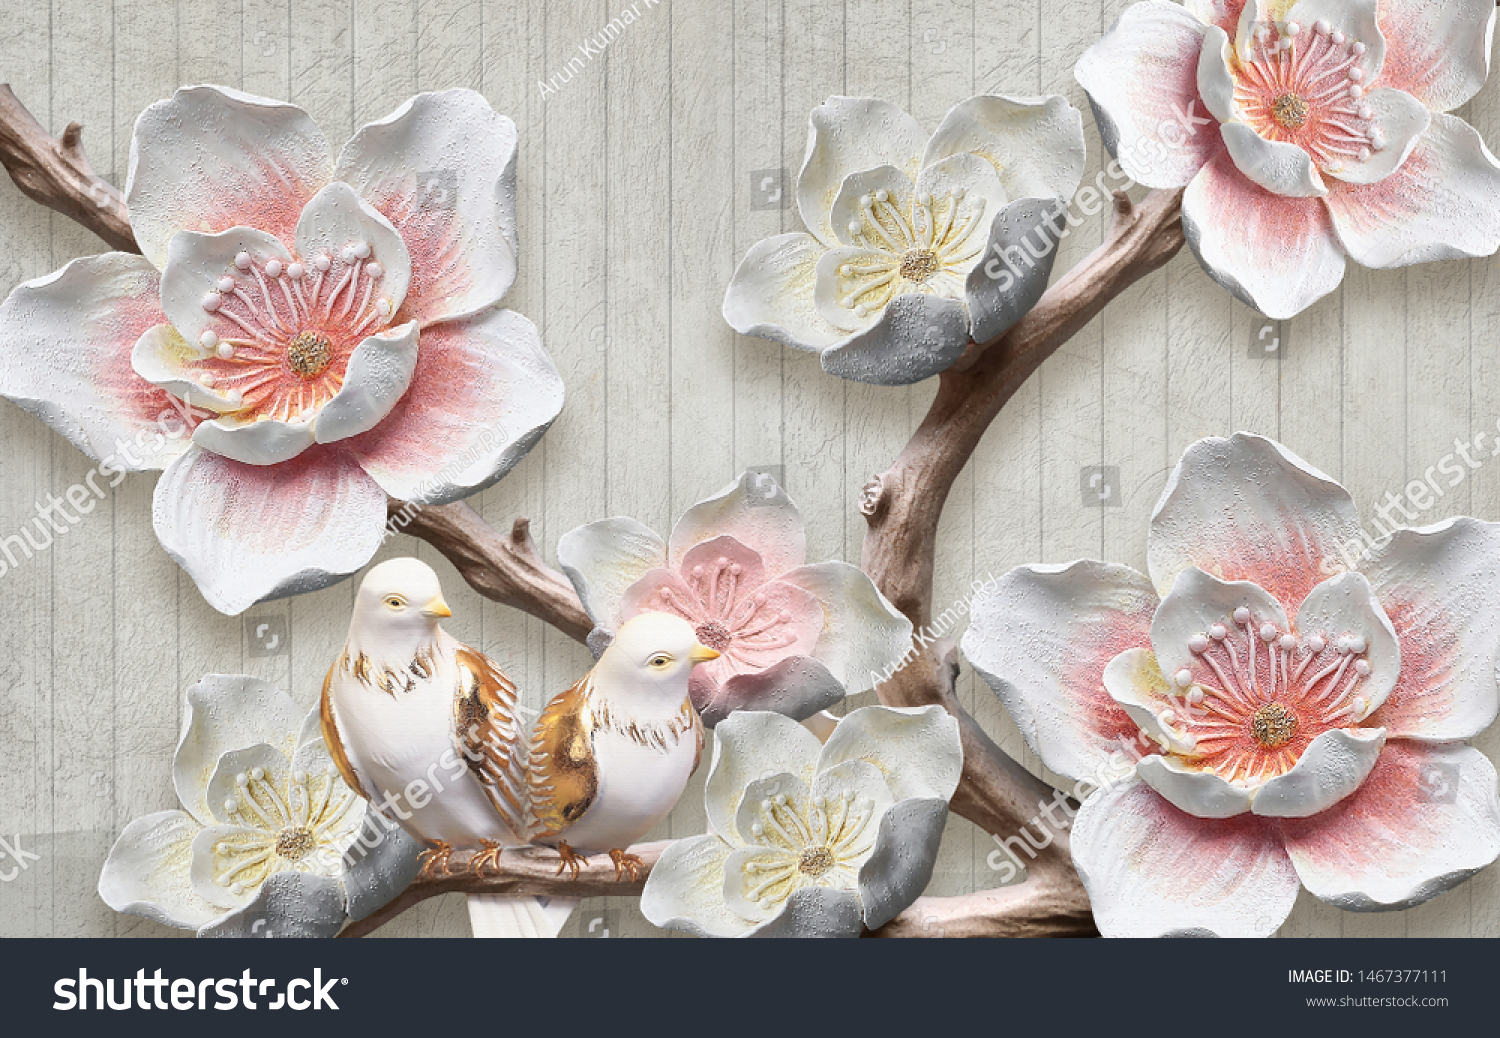 3d illustration,  white and pink flowers mural wallpaper